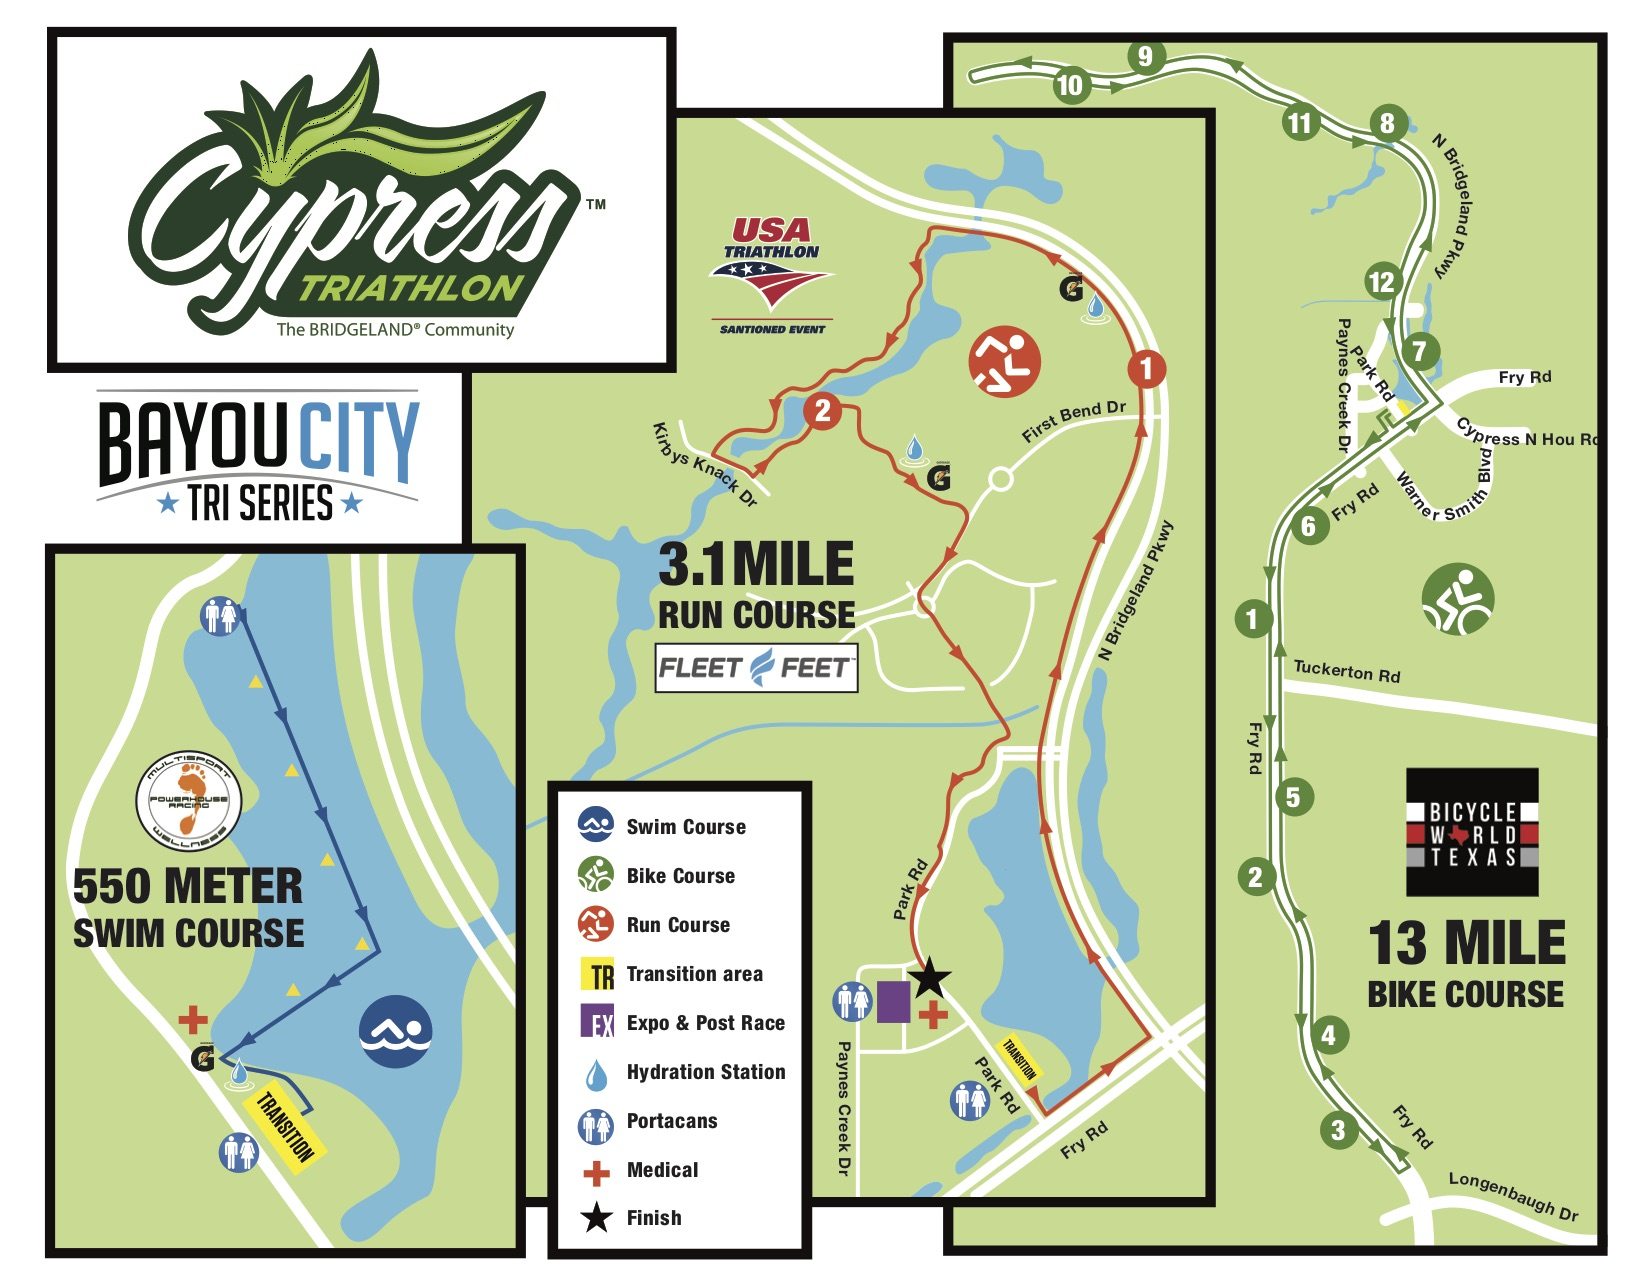 2019_Cypress_Triathlon_Map.jpg